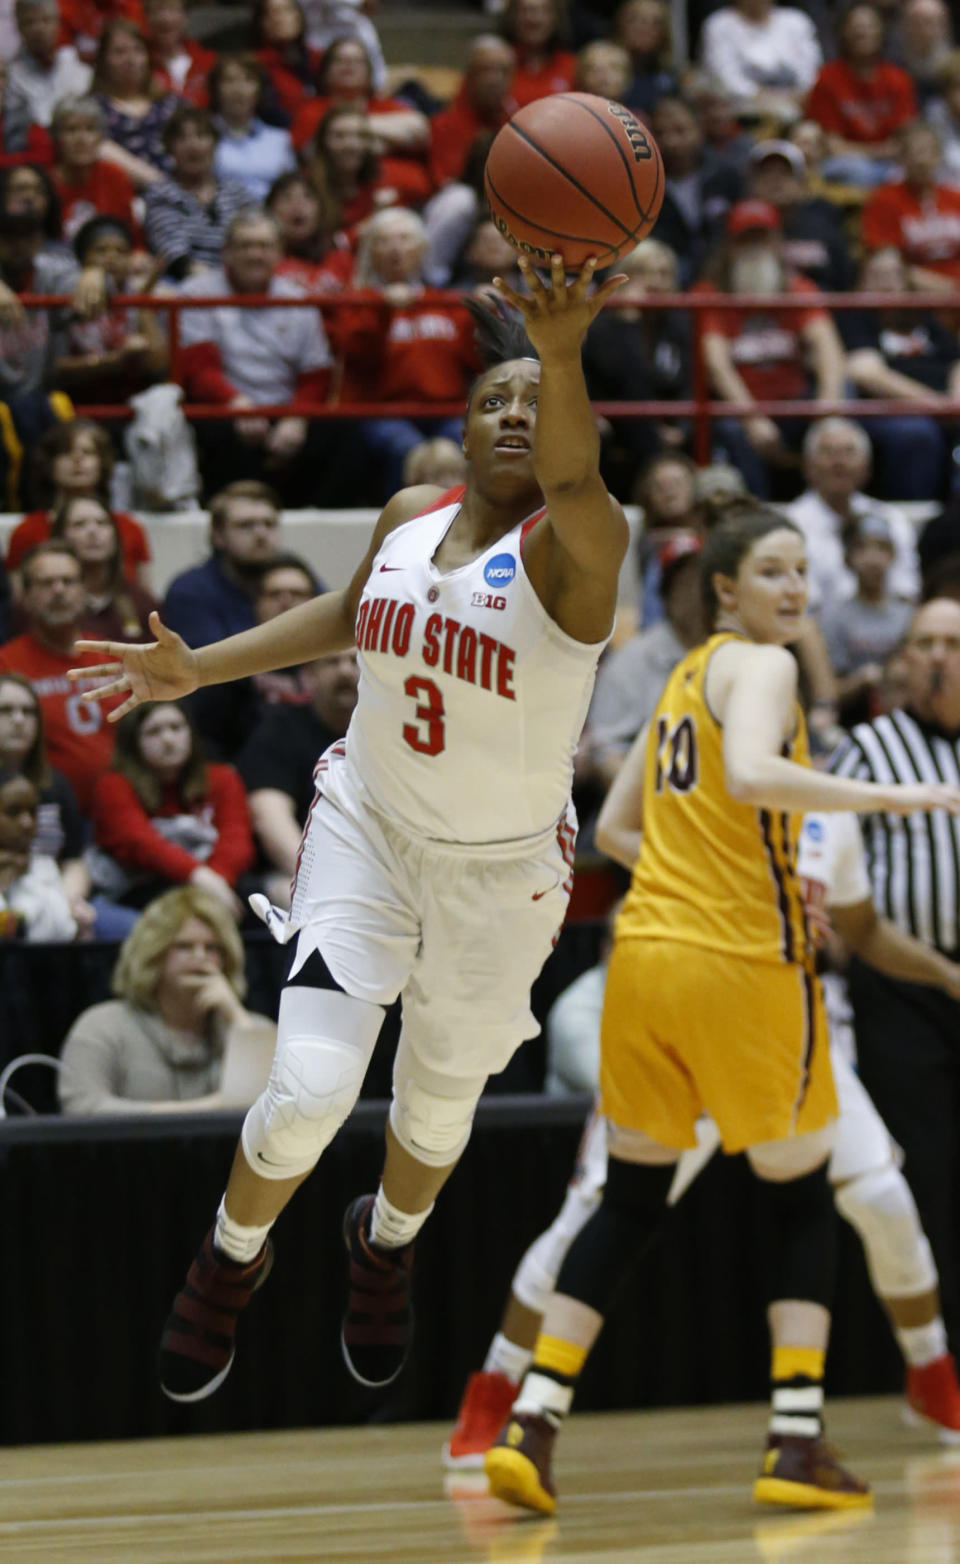 Ohio State guard Kelsey Mitchell, left, goes up to shoot in front of Central Michigan guard Cassie Breen during the first half of a second-round game in the NCAA women's college basketball tournament in Columbus, Ohio, Monday, March 19, 2018. (AP Photo/Paul Vernon)